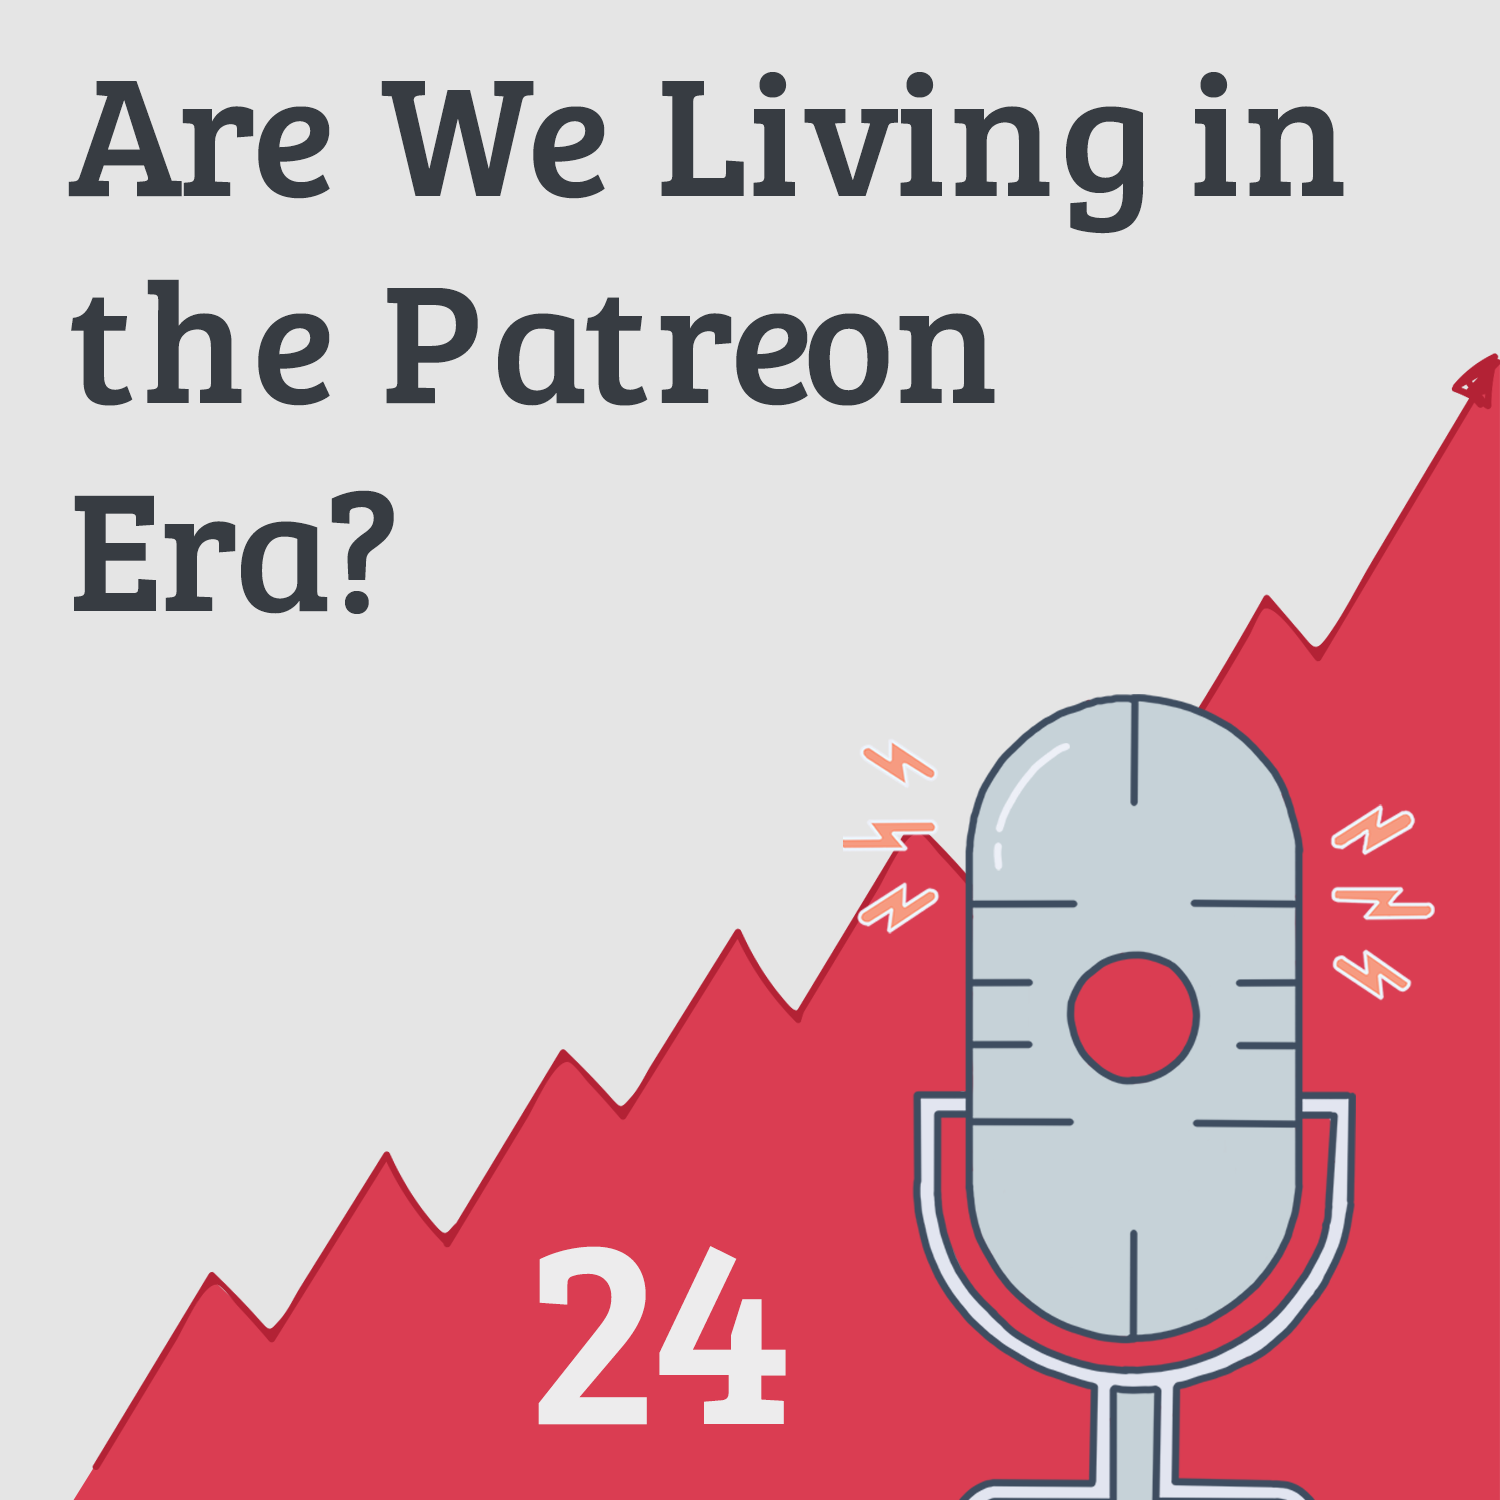 Are We Living in the Patreon Era?